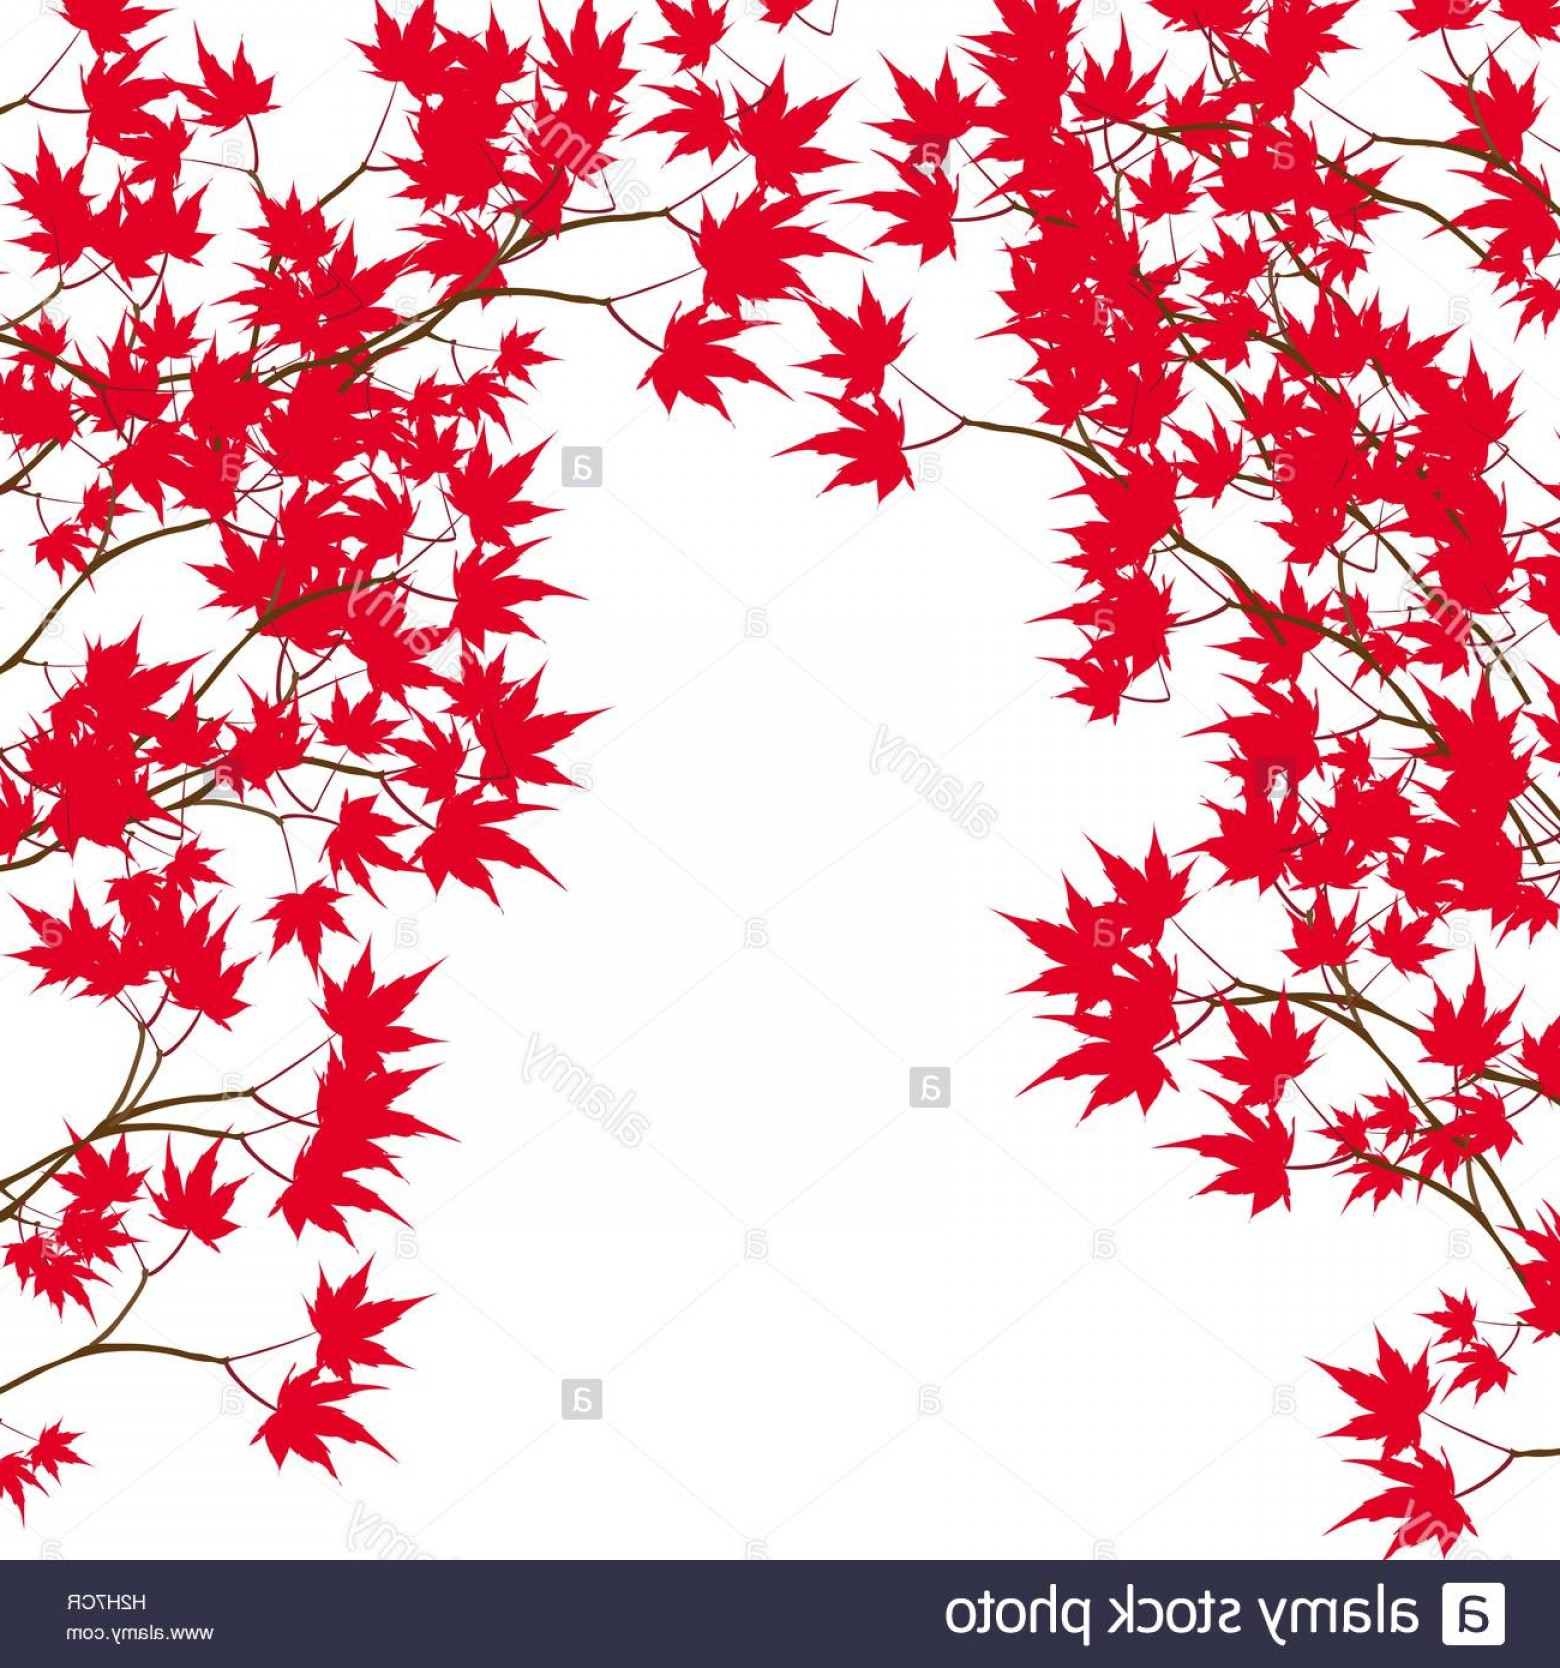 Red Maple Leaf Vector: Stock Photo Greeting Card Red Maple Leaves On The Branches On Either Side Japanese